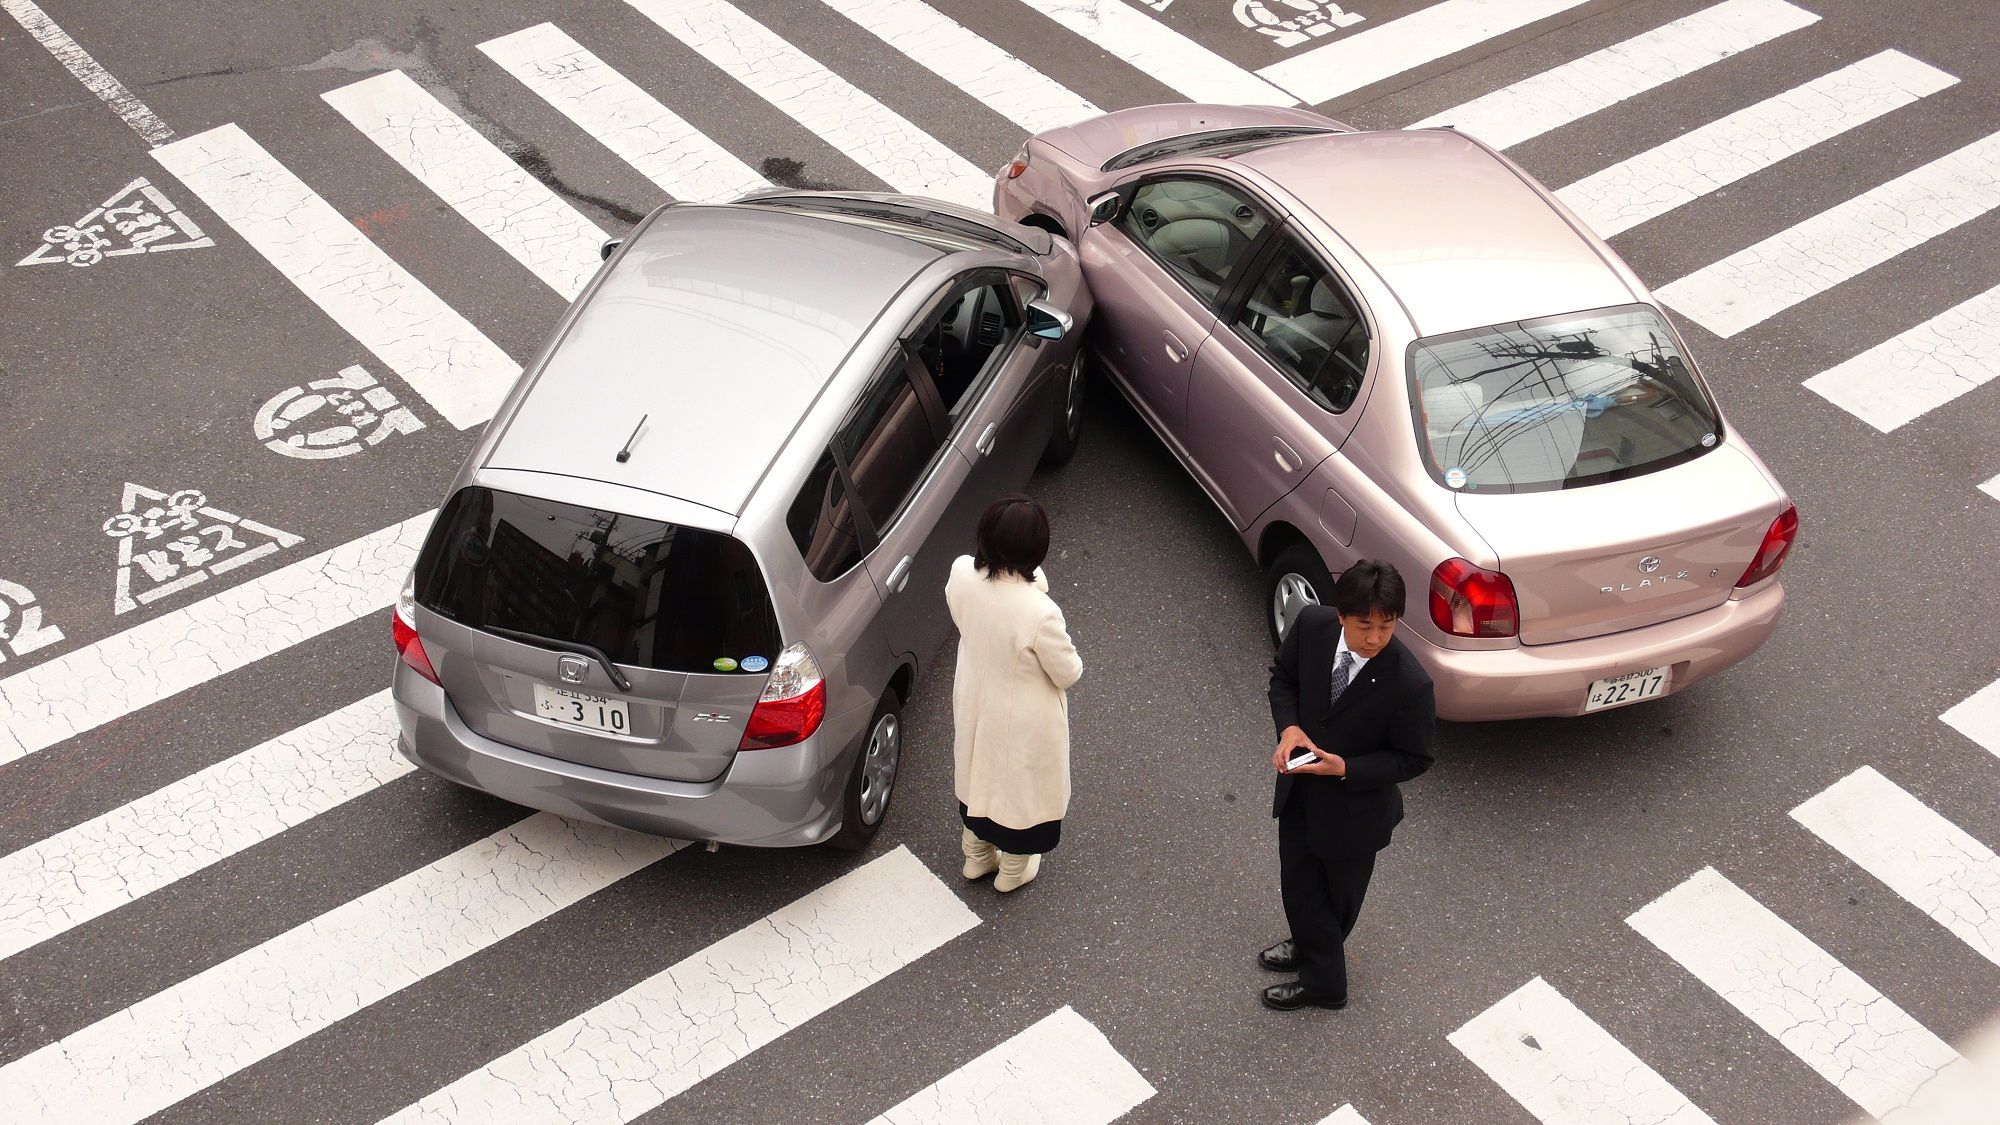 Driving safely should be the main concern for every driver